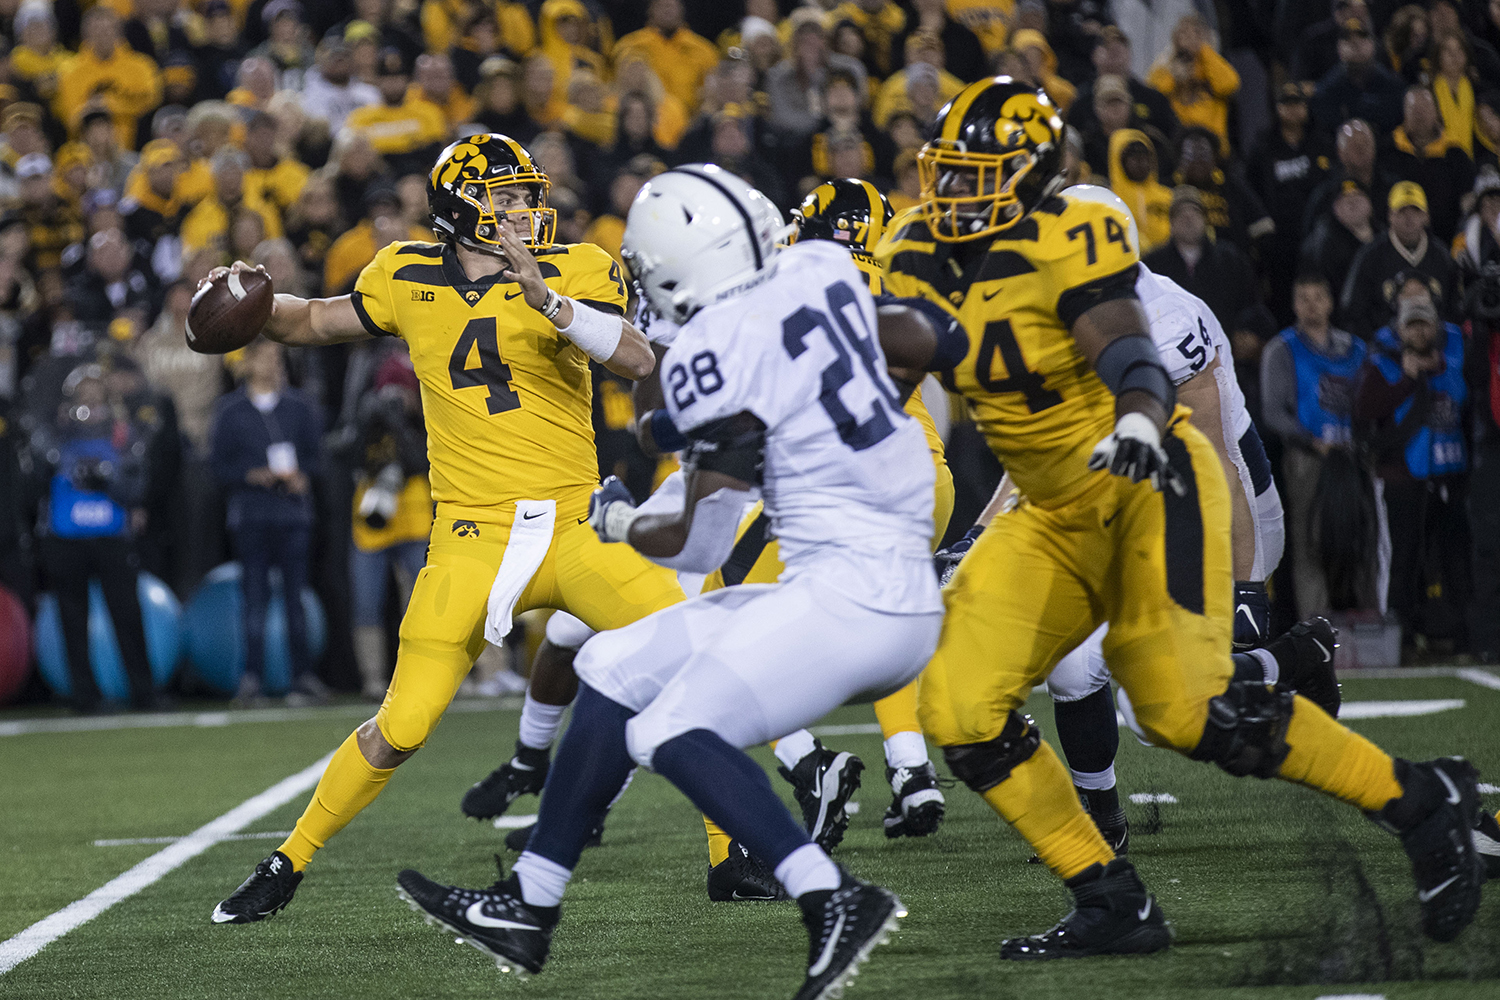 Iowa QB Nate Stanley throws a pass during the Iowa football vs. Penn State game in Kinnick Stadium on Saturday, Oct. 12, 2019. The Nittany Lions defeated the Hawkeyes 17-12.